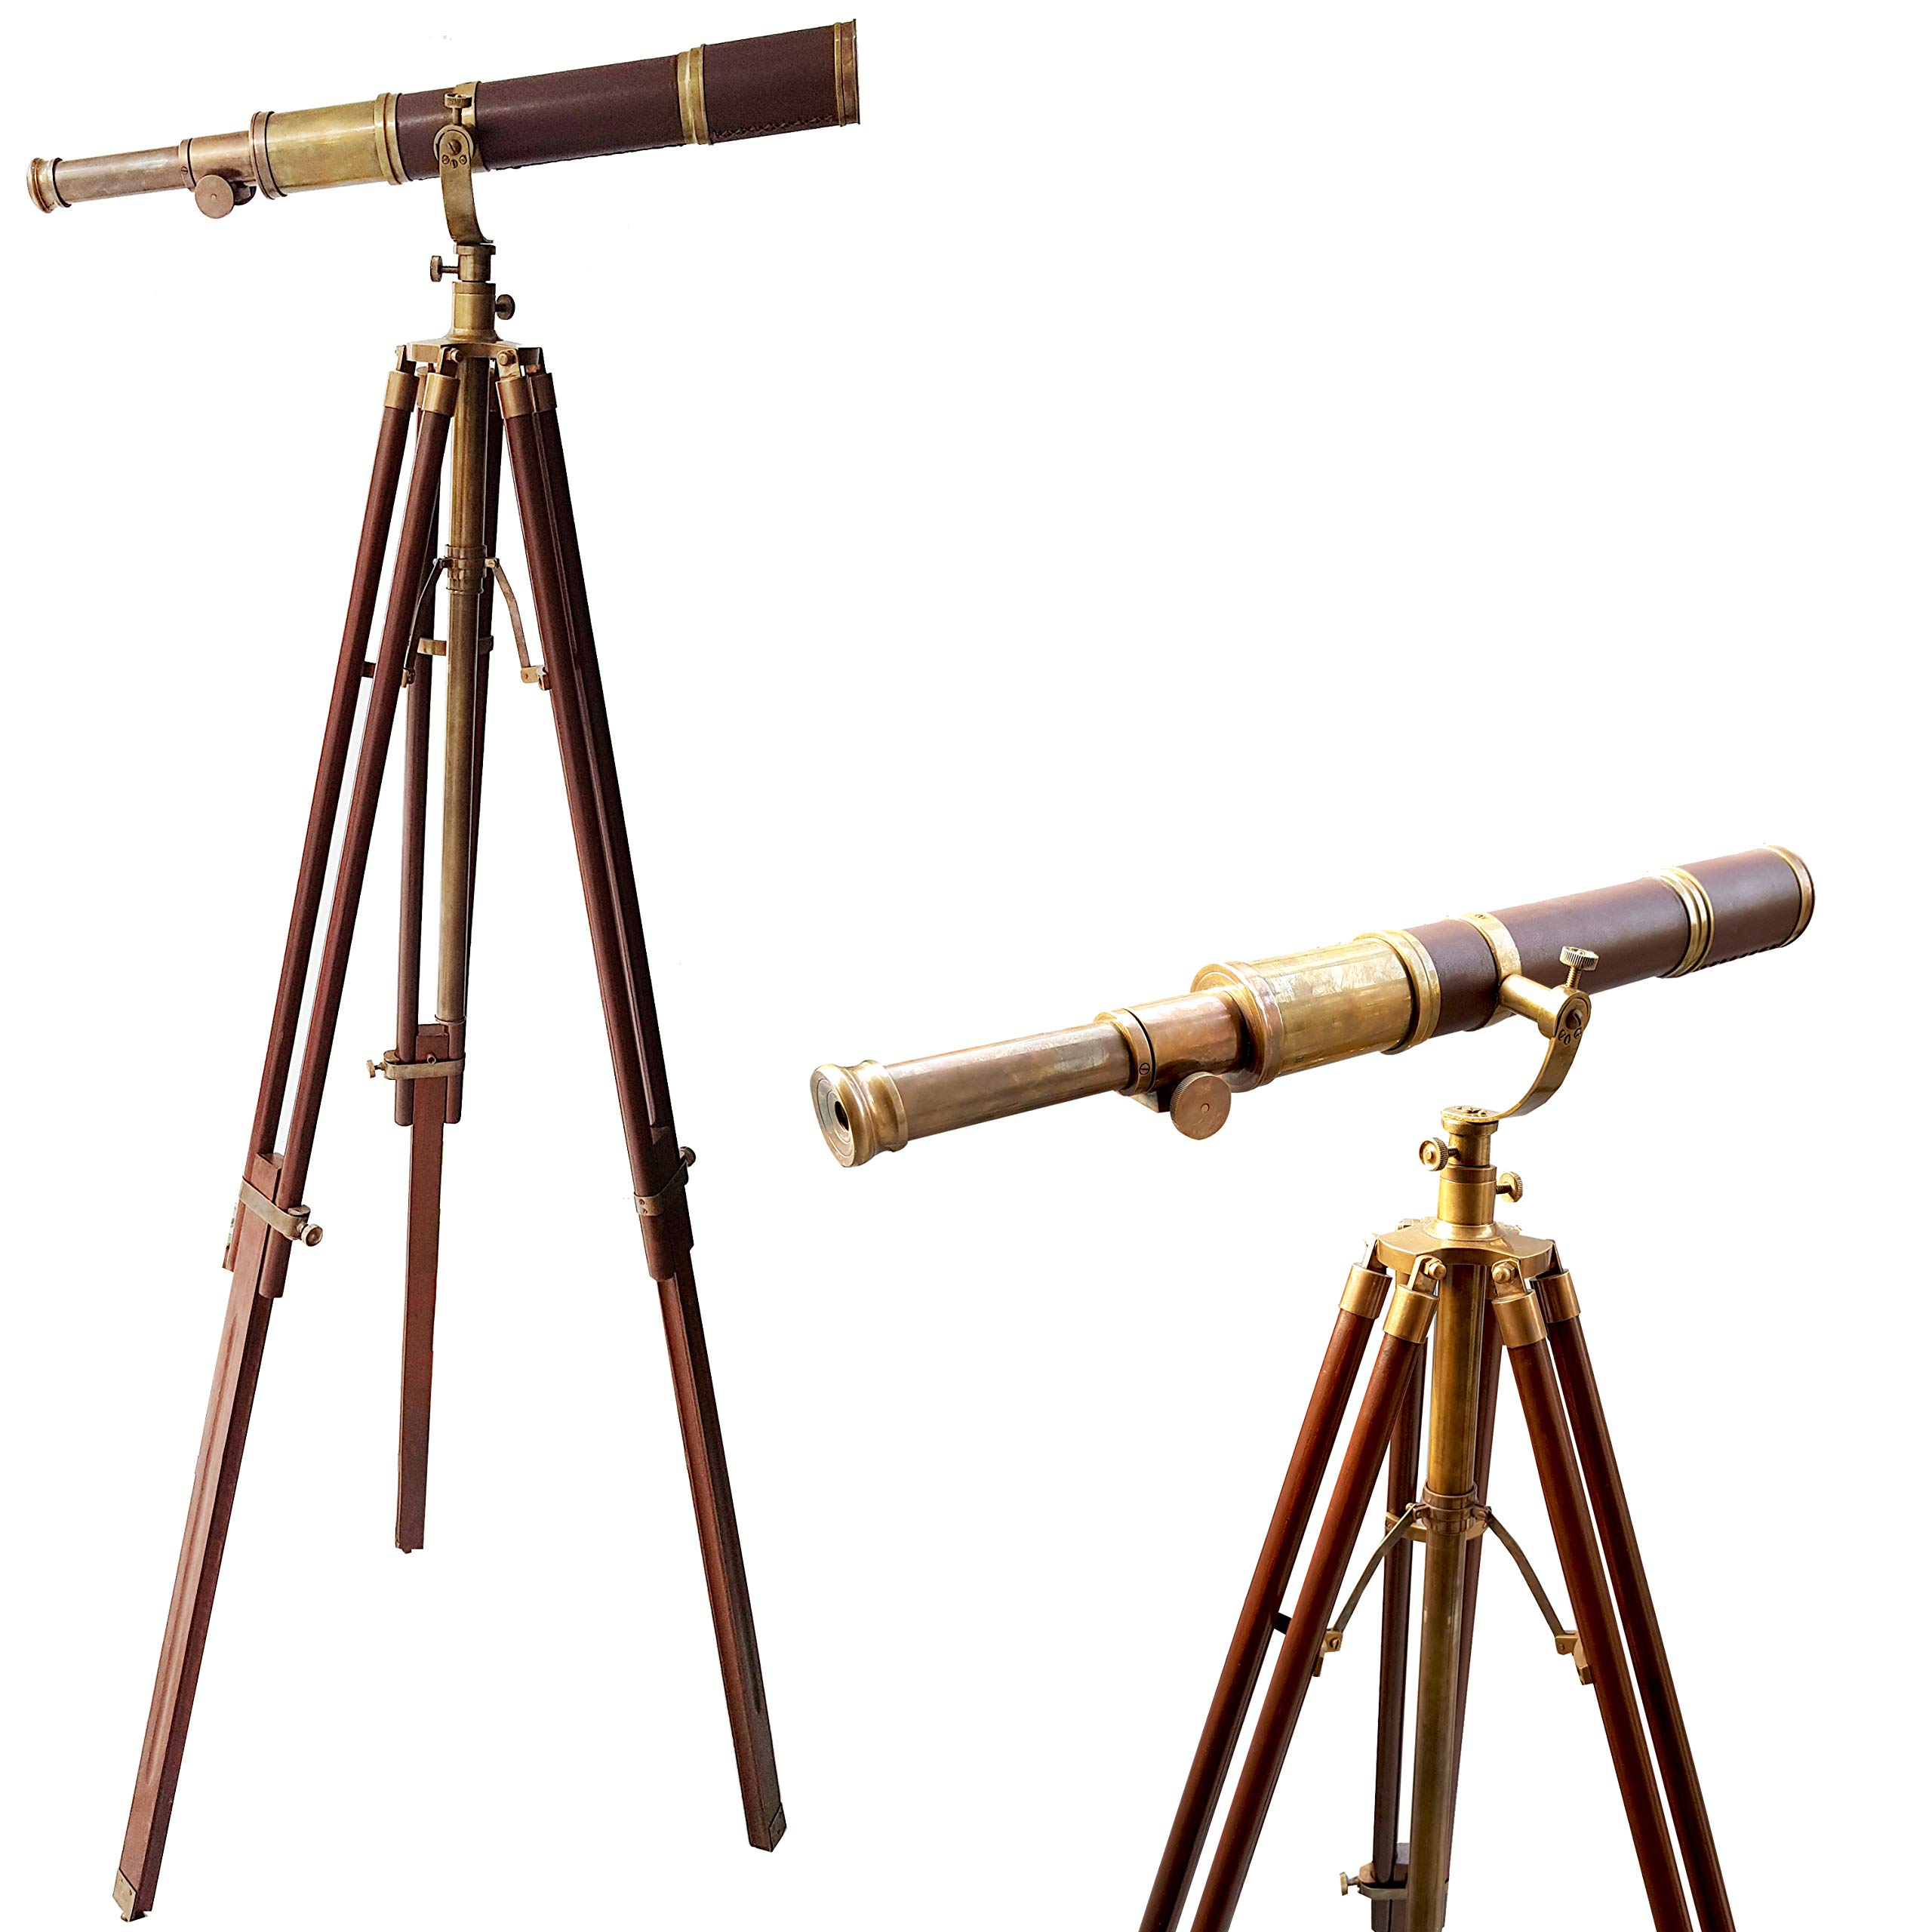 collectiblesBuy Royal Vintage Moon Arc Telescope Antique Handmade Tripod Telescopes Handicraft Nautical Article